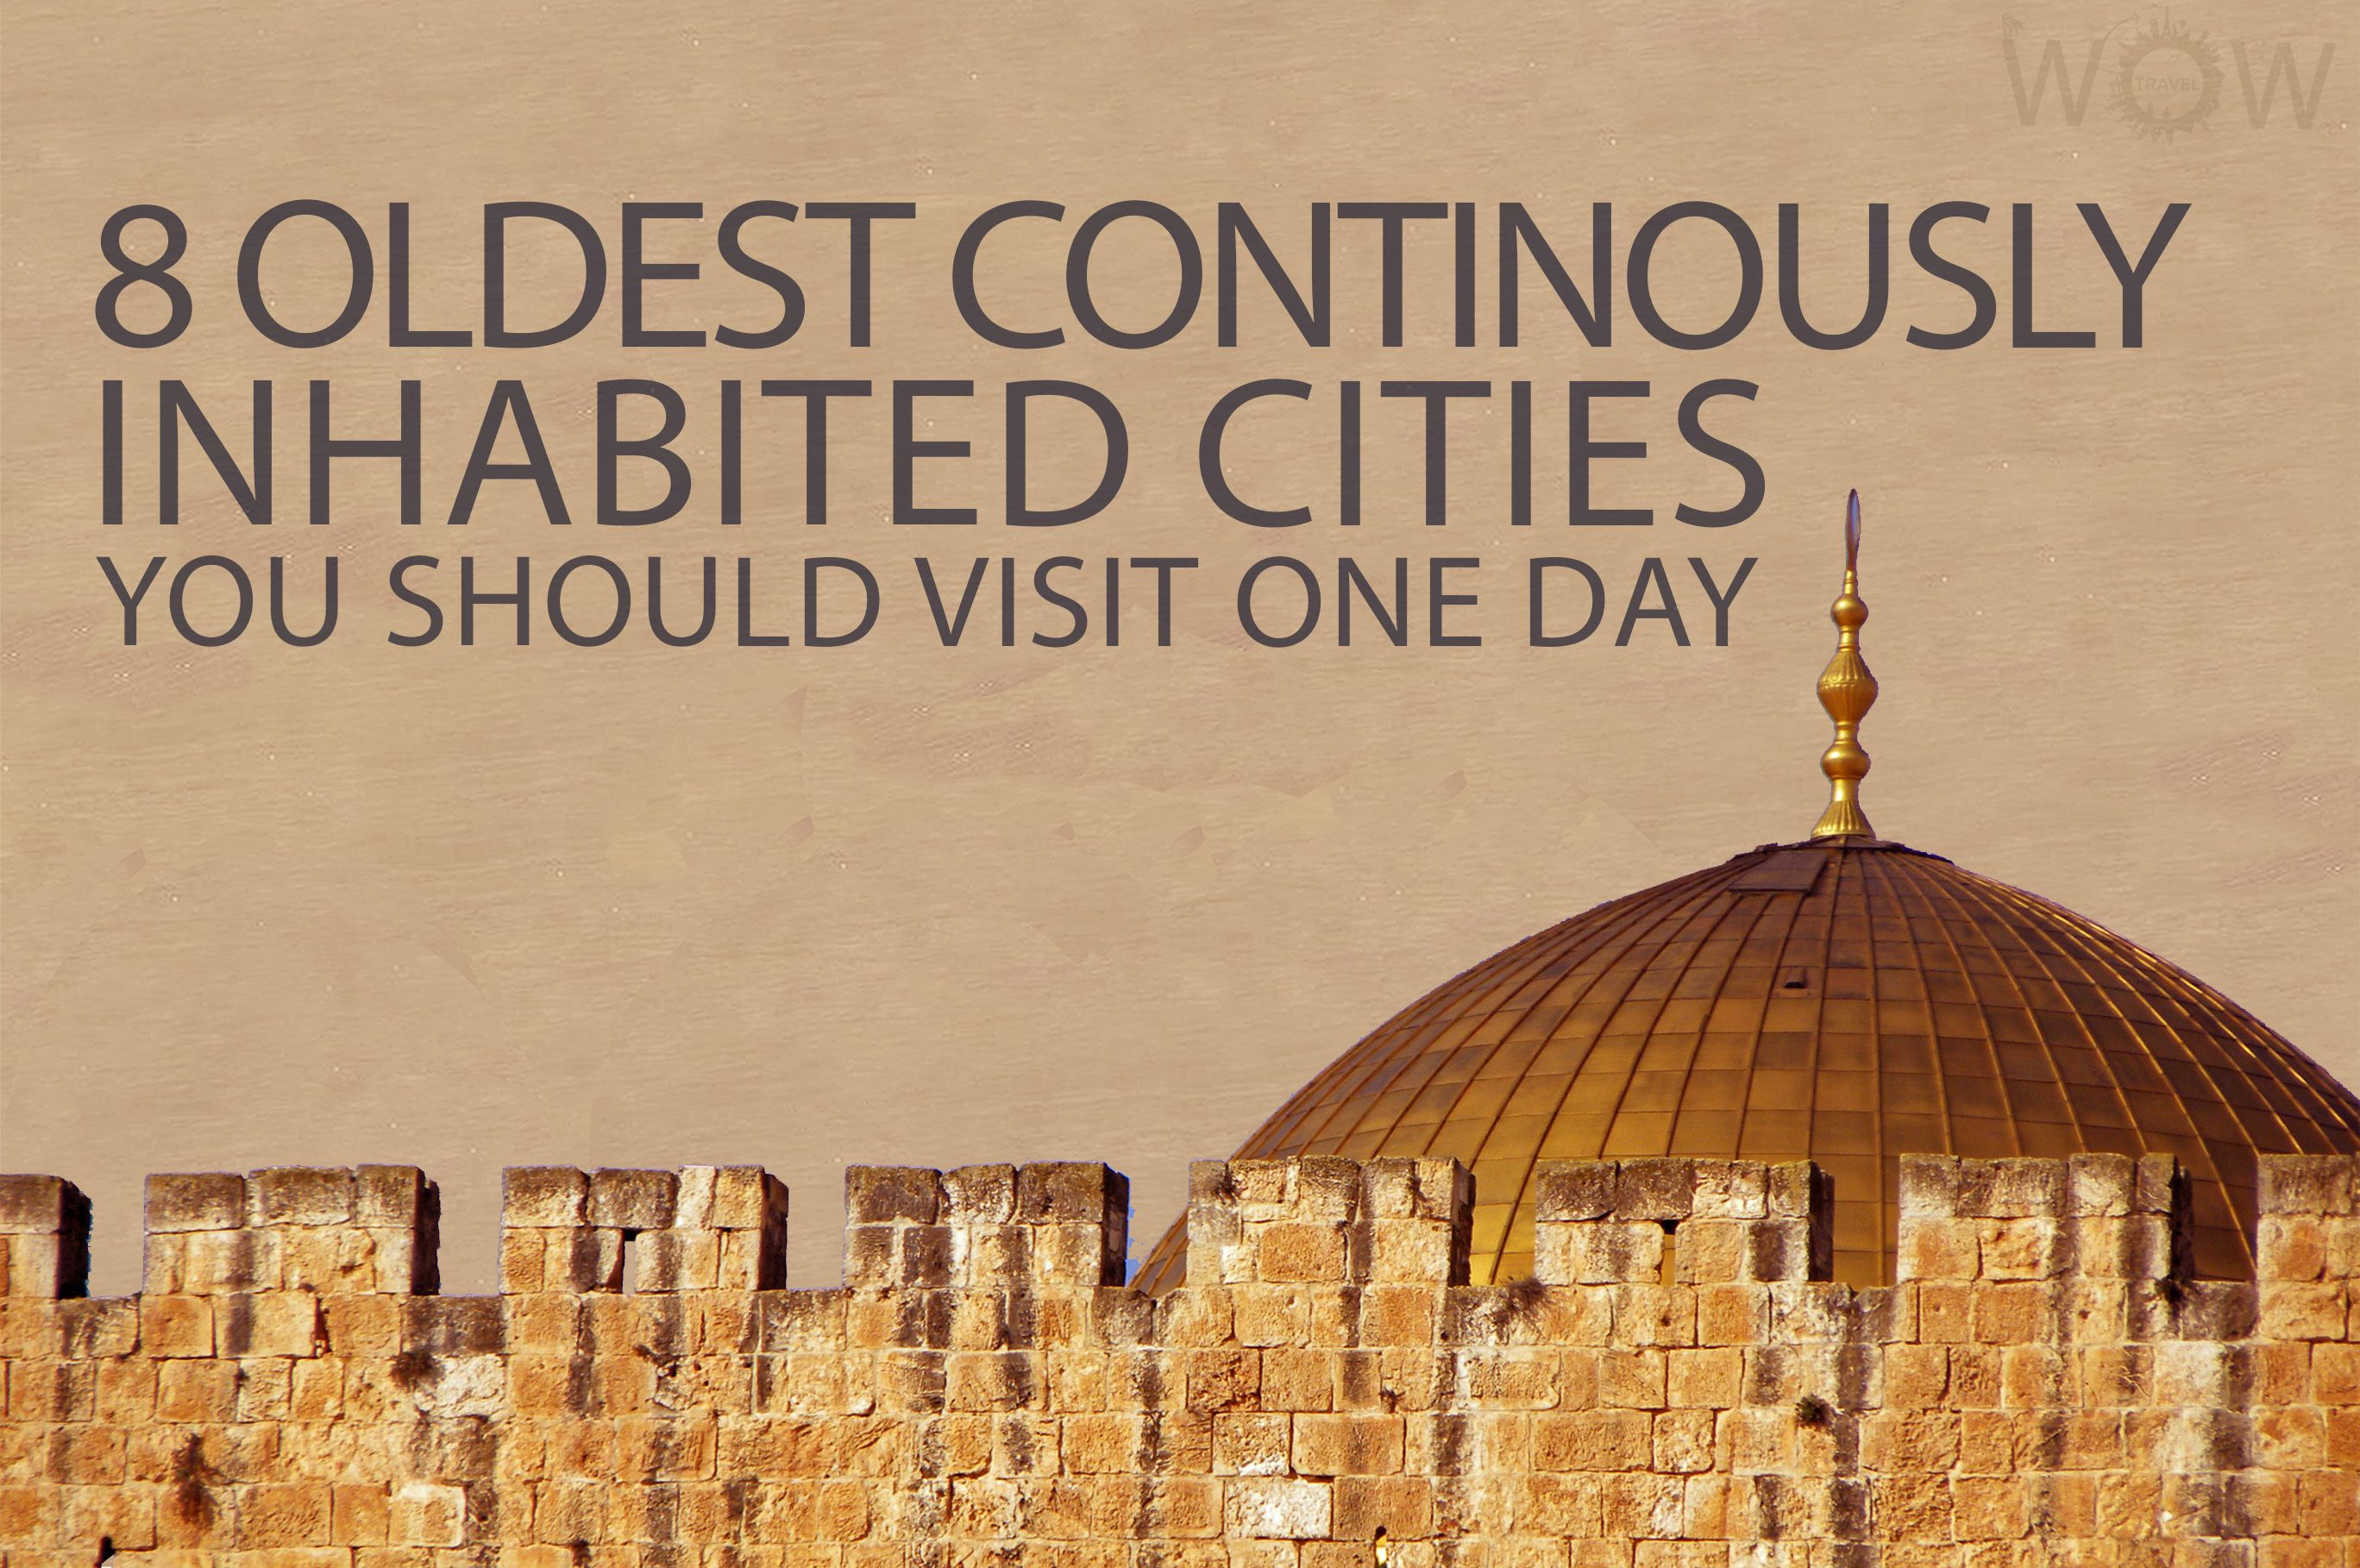 We have modern and rather young cities but we also have some who have existed for centuries. Here is a list of the 8 Oldest Continuously Inhabited Cities You Should Visit One Day.